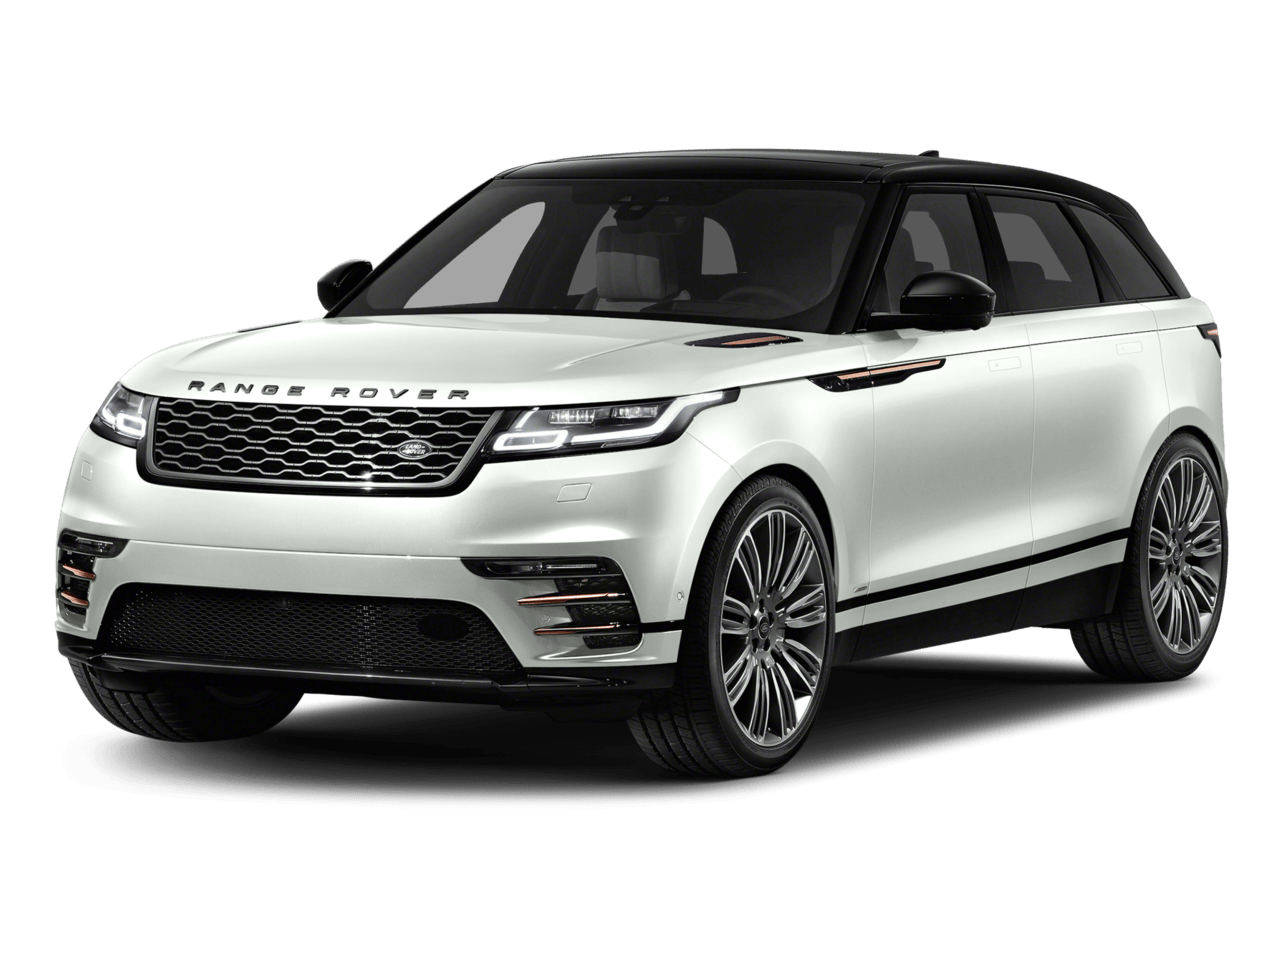 land_rover_PNG80